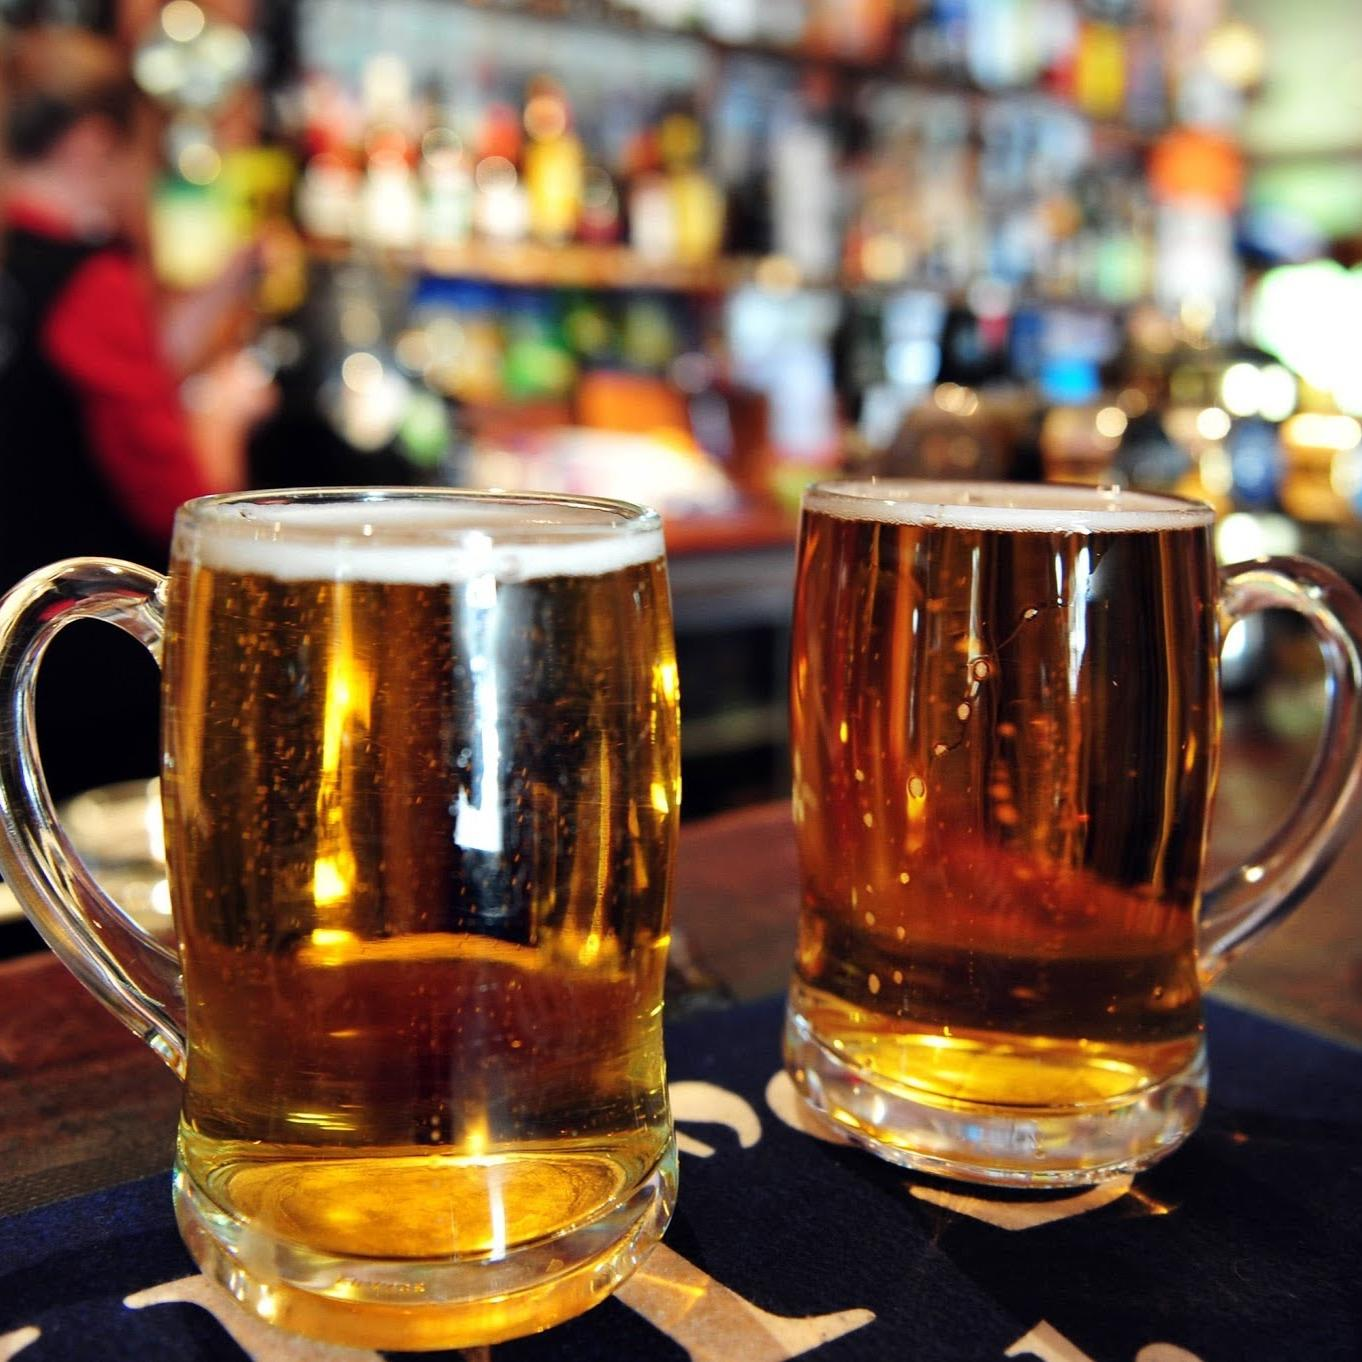 Sports On Tap - Minot, MD 58701 - (701)837-8220   ShowMeLocal.com